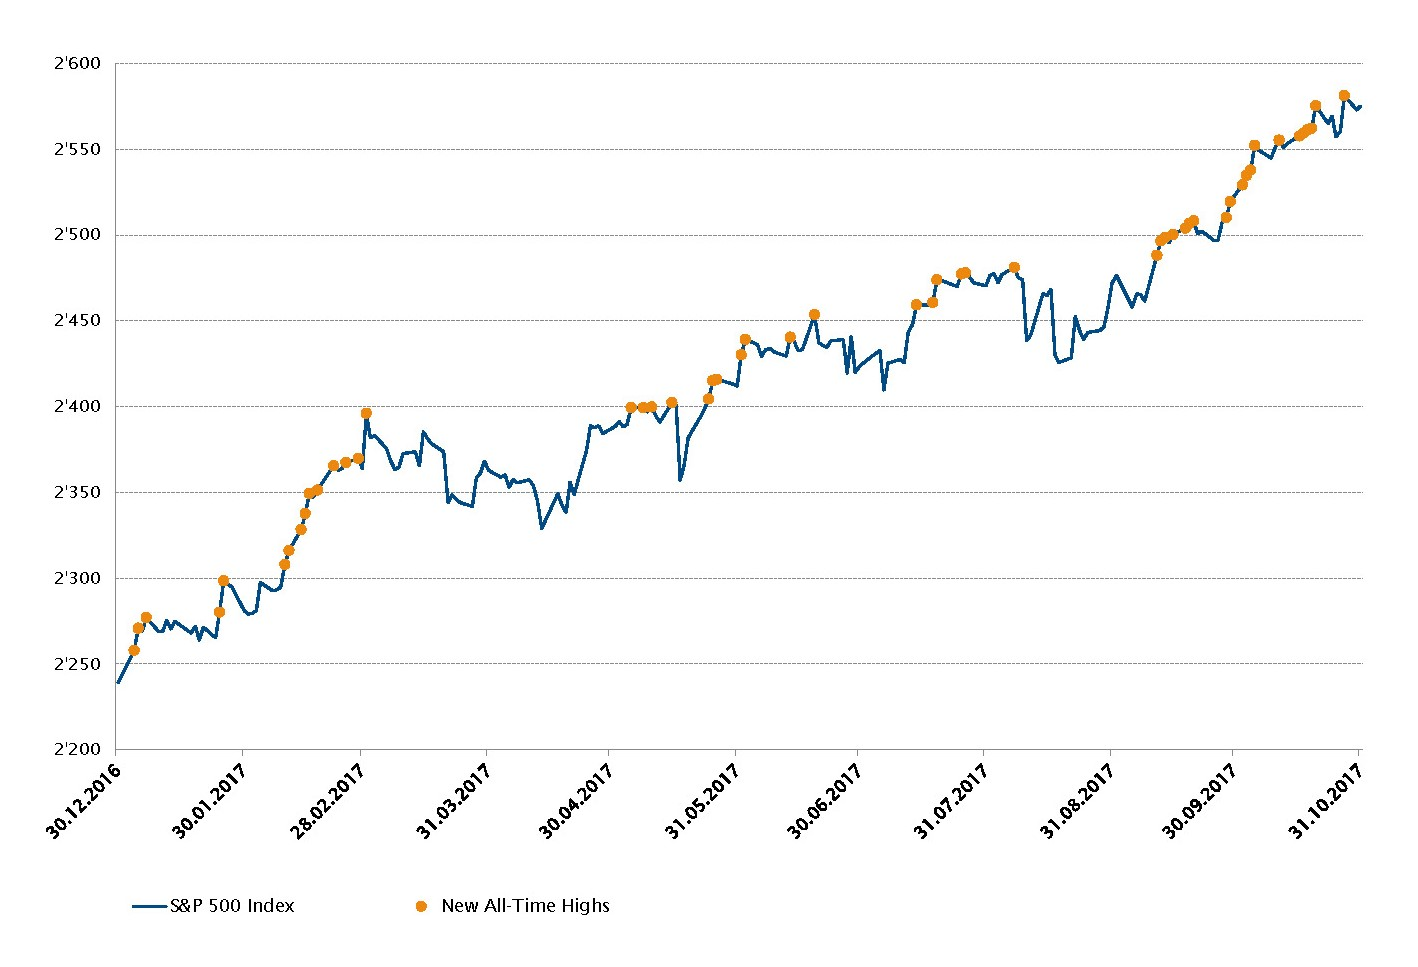 S&P 500 Index YTD evolution and new all-time highs